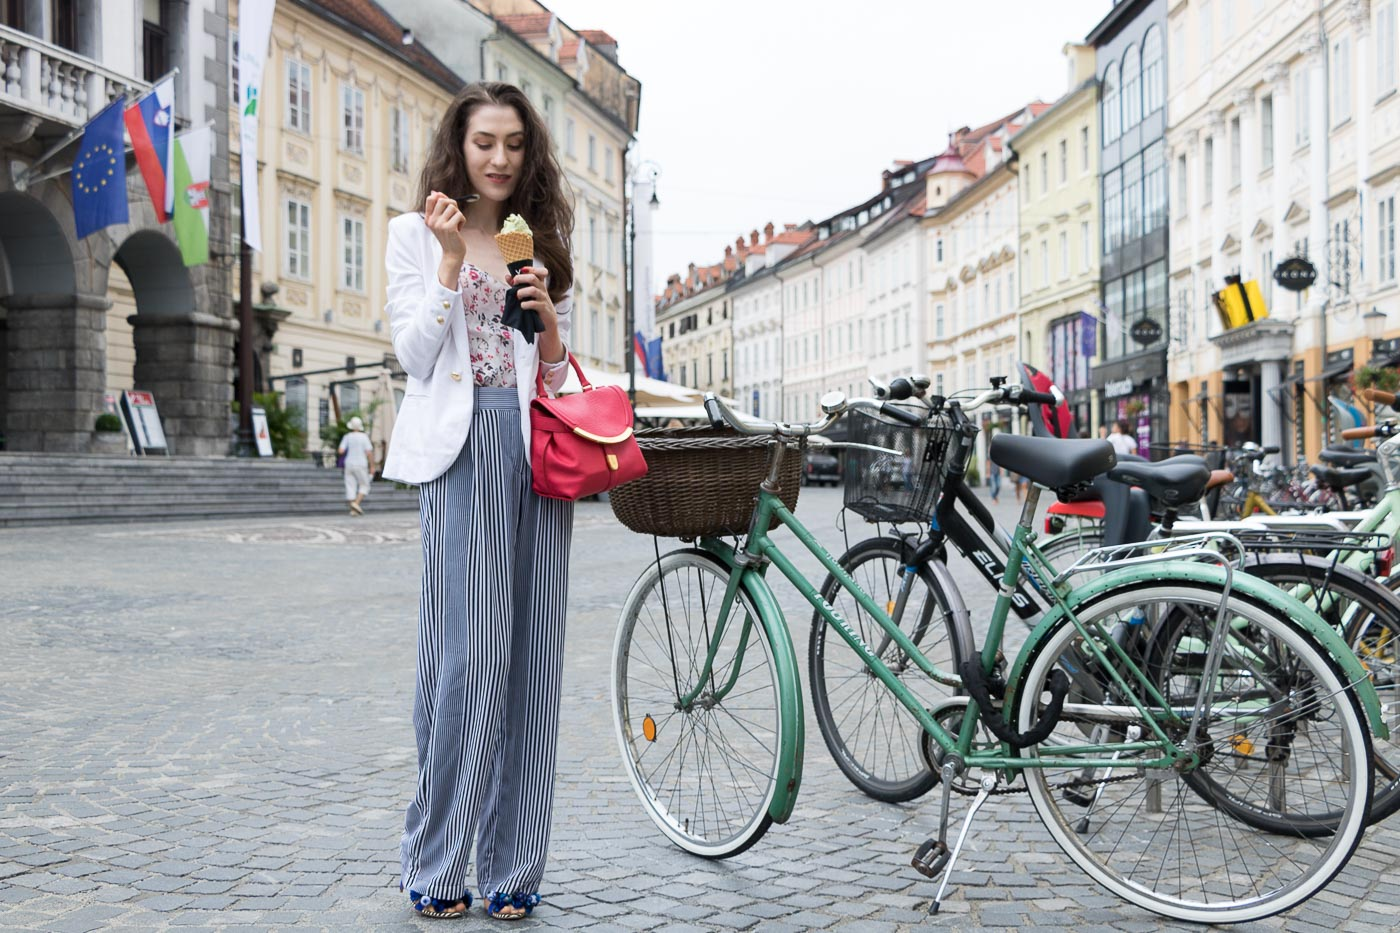 Fashion Blogger Veronika Lipar of Brunette from Wall Street eating pistachio ice cream on the street dressed in palazzo striped Michael Kors trousers, white blazer, floral slip top from Stella McCartney and blue Aquazzura sandals